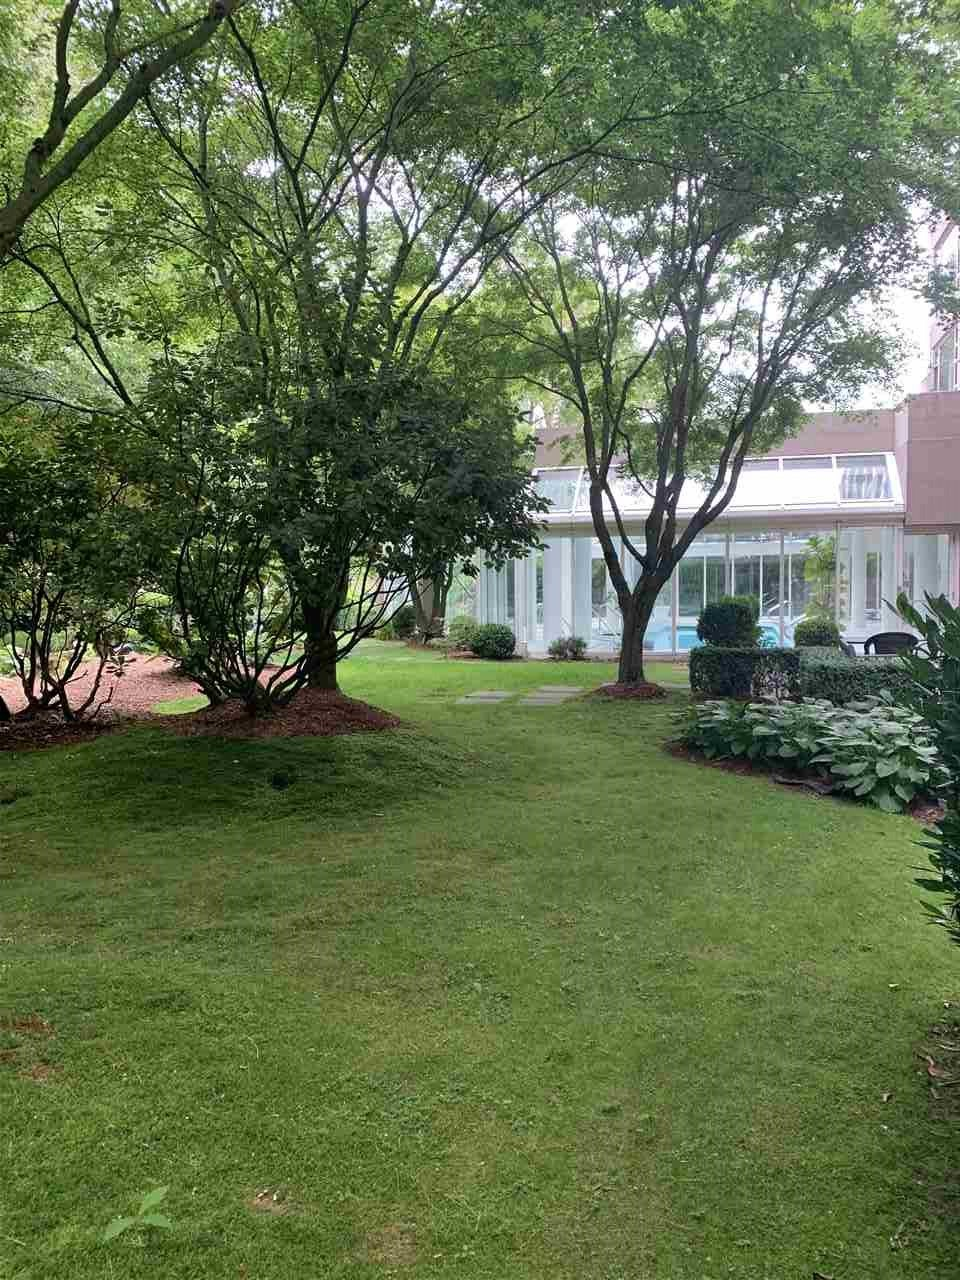 312 1327 E KEITH ROAD - Lynnmour Apartment/Condo for sale, 1 Bedroom (R2479259) - #23